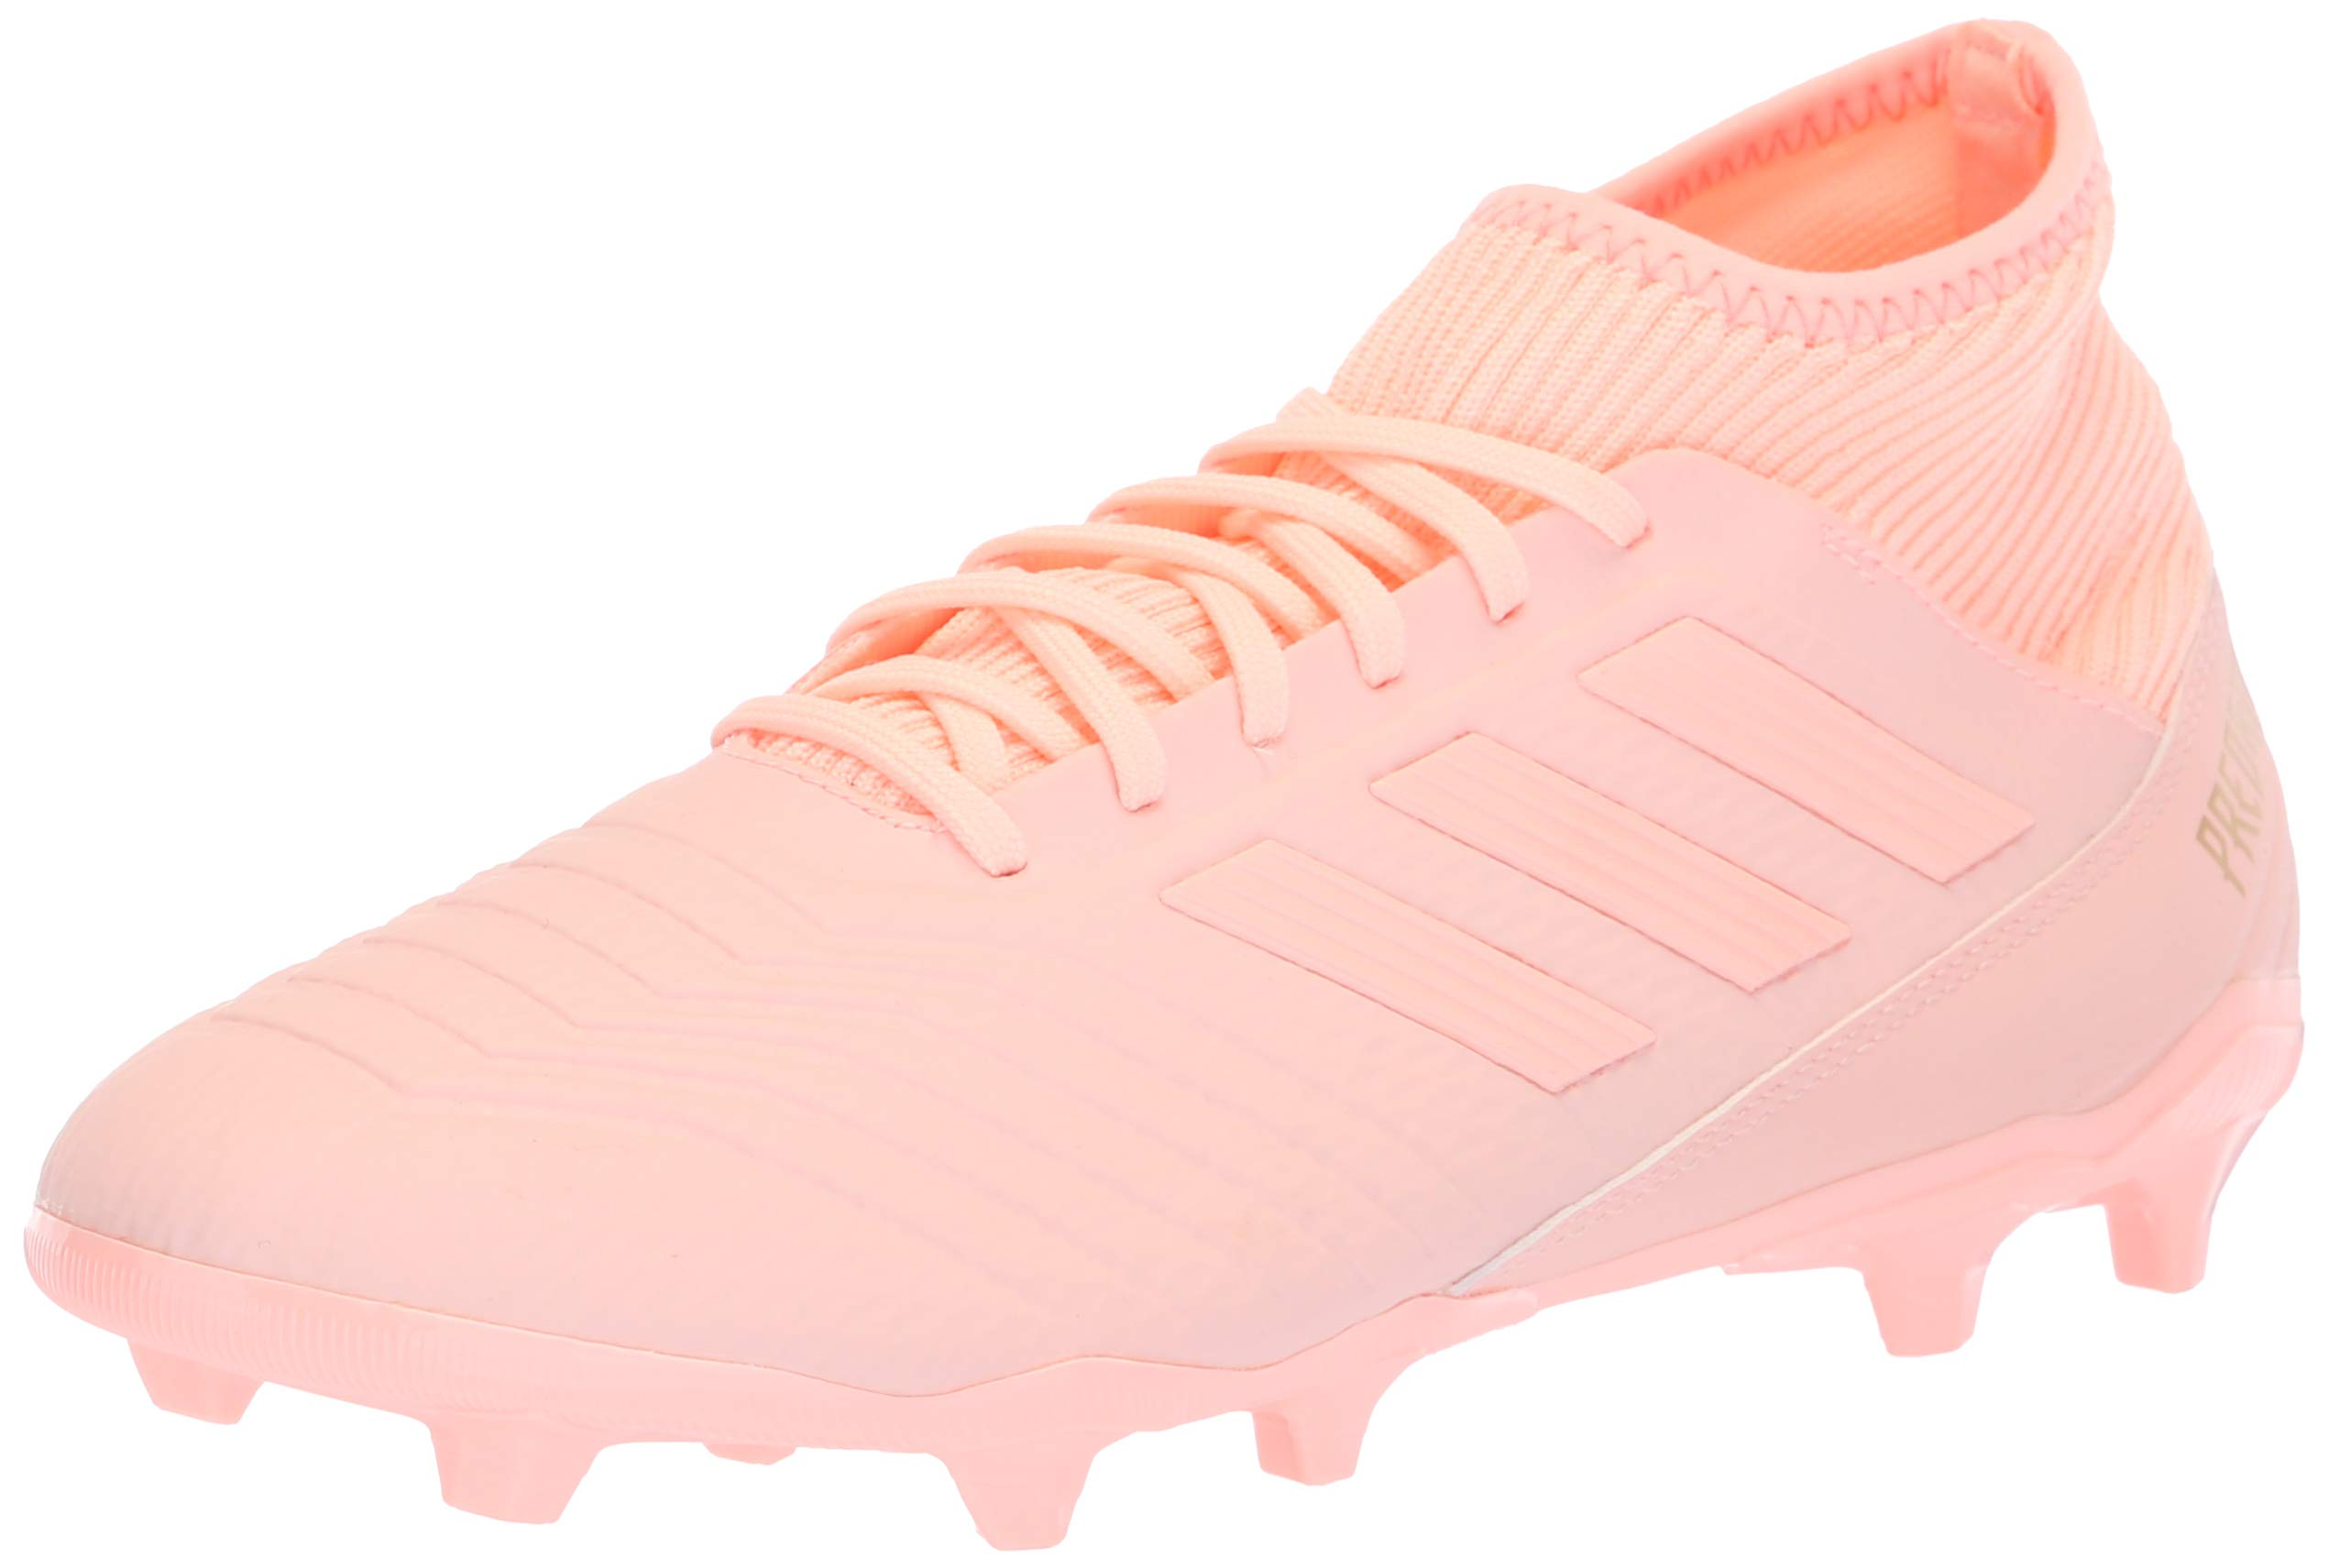 adidas Men's Predator 18.3 Firm Ground Soccer Shoe, Clear Orange/Trace Pink, 8 M US